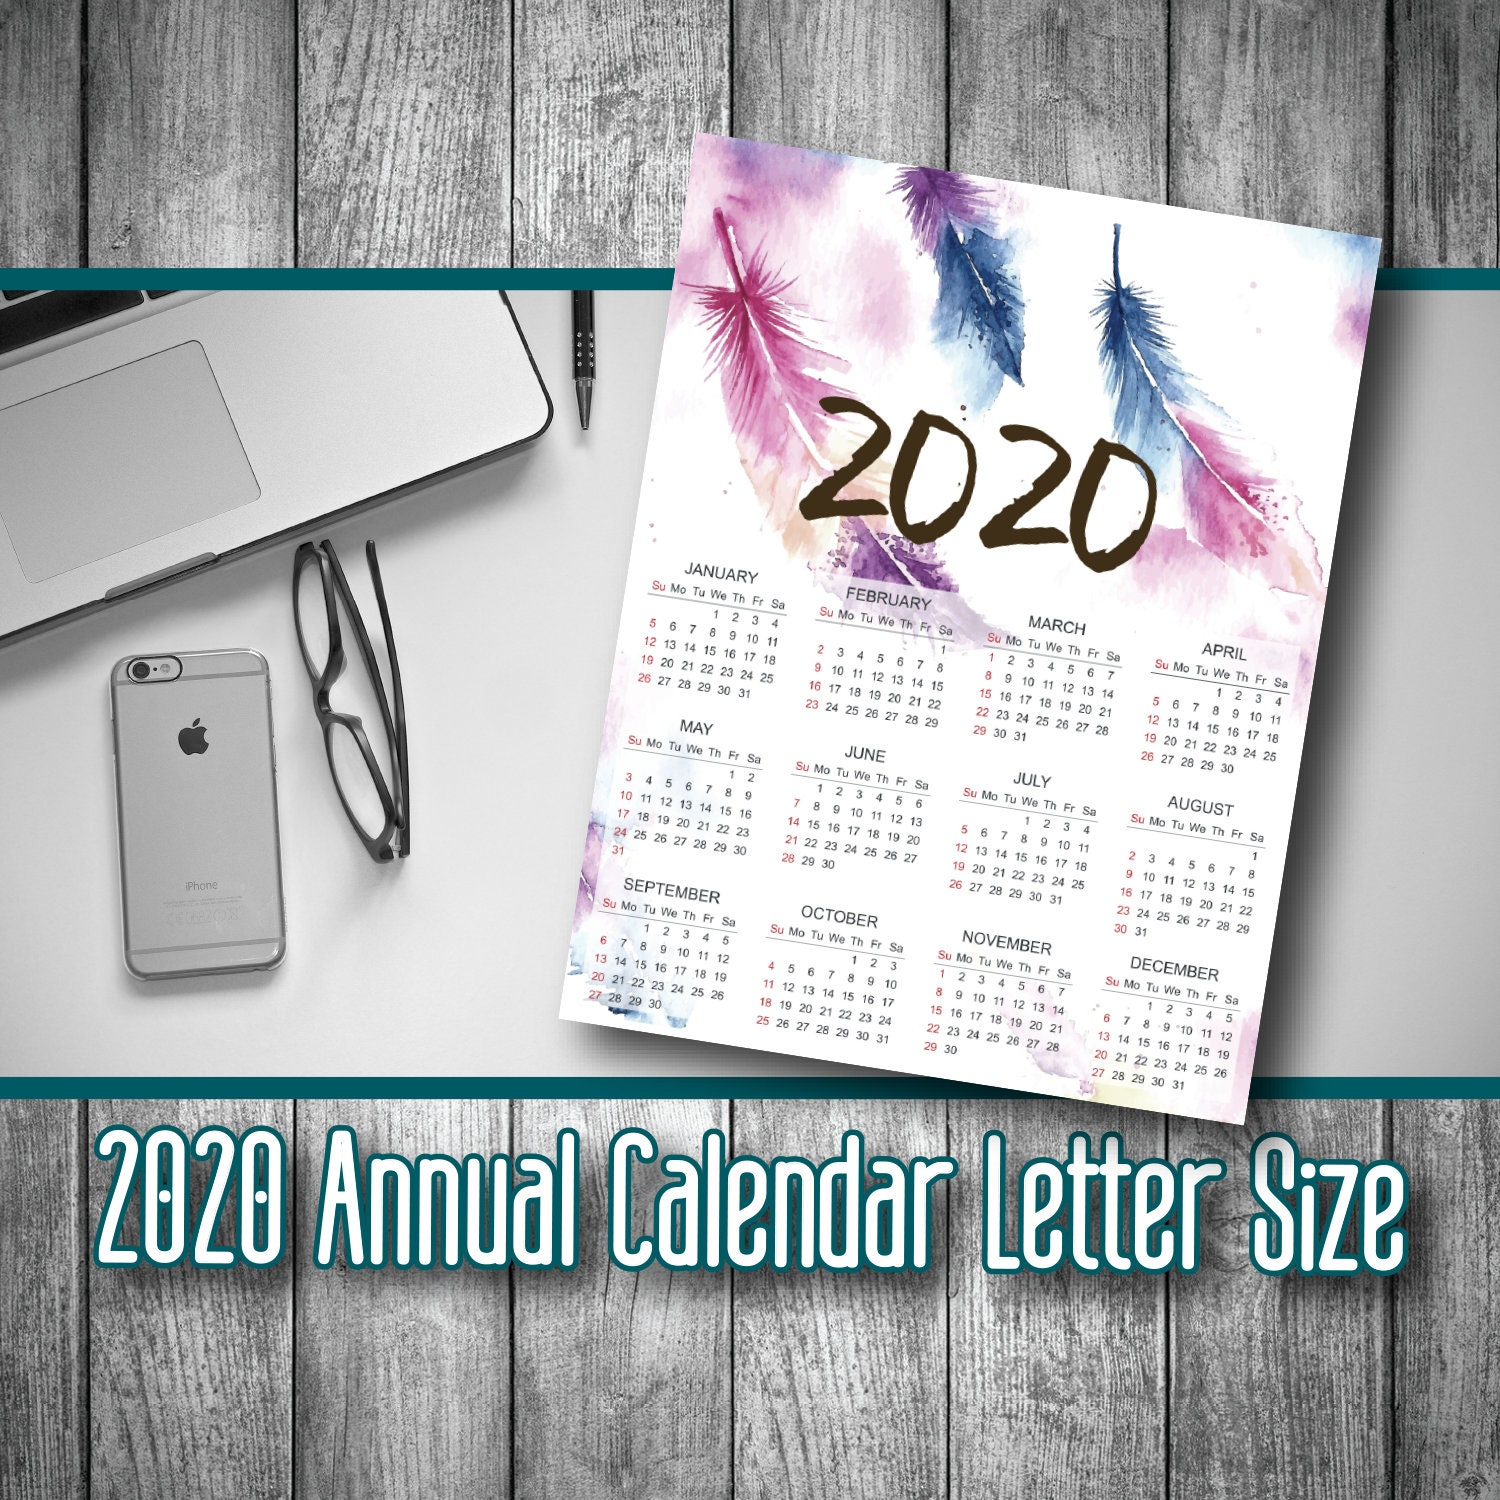 December 2020 Calendar Scary Theme 2020 printable calendar download 2020 calendar printable | Etsy